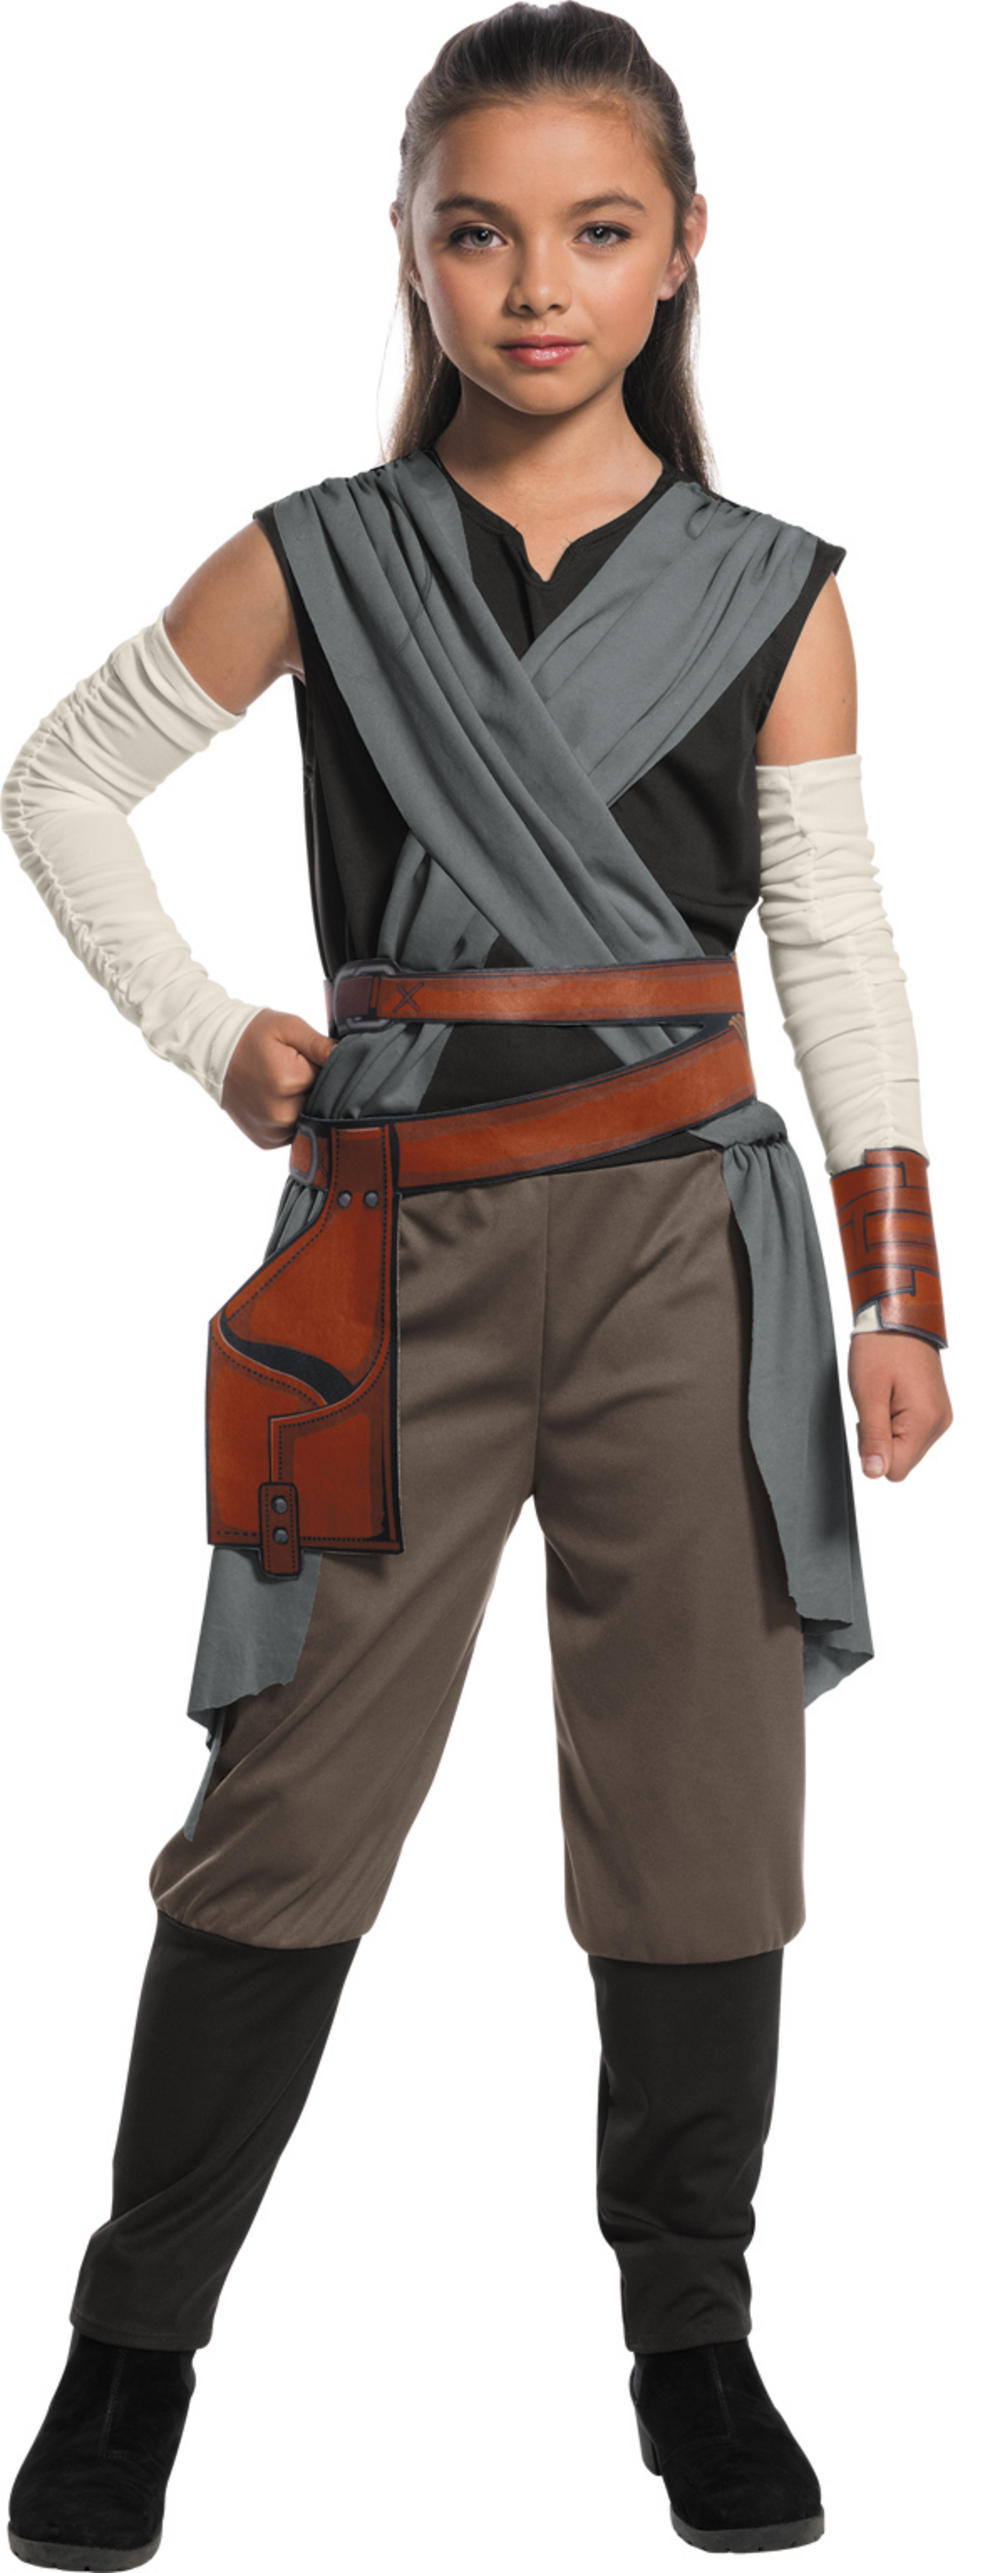 Deluxe Rey Girls The Last Jedi Costume  sc 1 st  Mega Fancy Dress : male princess leia costume  - Germanpascual.Com